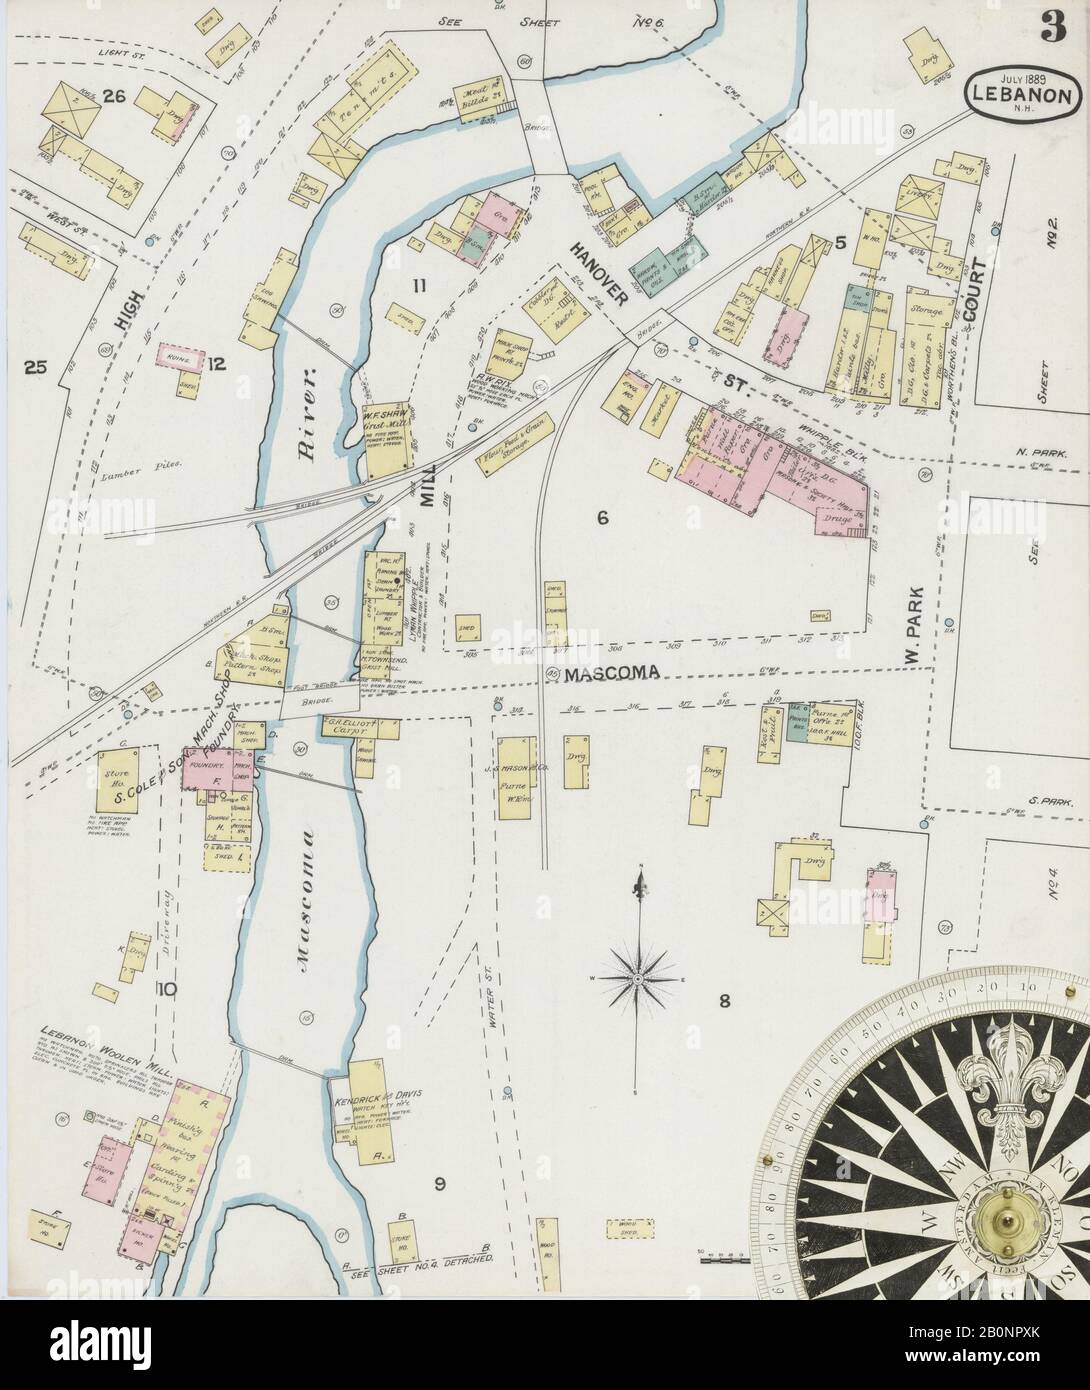 Image 3 Of Sanborn Fire Insurance Map From Lebanon Grafton County New Hampshire Aug 1889 6 Sheet S America Street Map With A Nineteenth Century Compass Stock Photo Alamy,Best Places To Travel In December And January